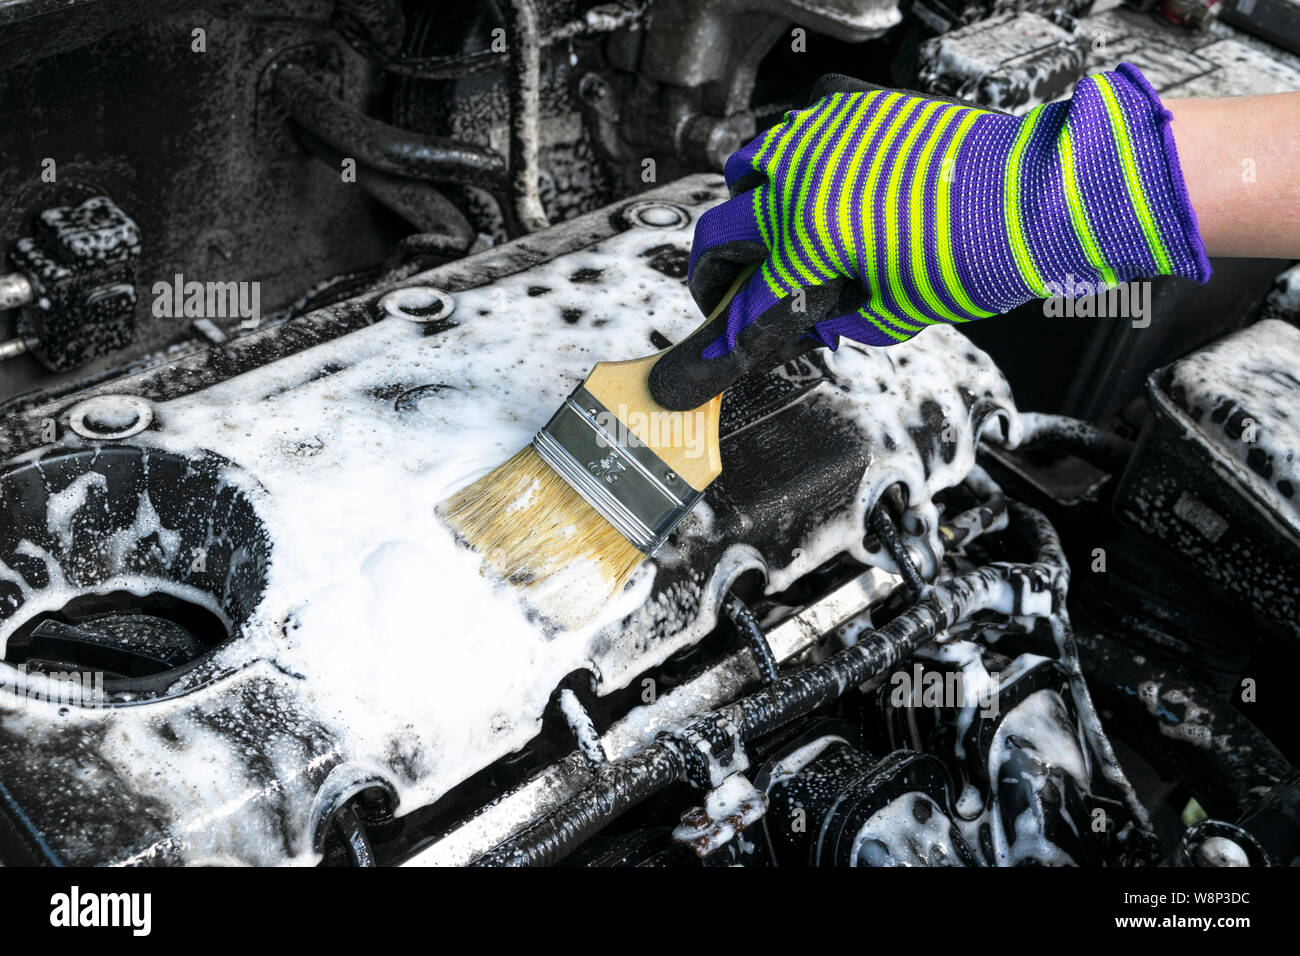 A man cleaning car engine with shampoo and brush. Car detailing or valeting concept. Selective focus. Car detailing. Cleaning with sponge. Worker clea Stock Photo